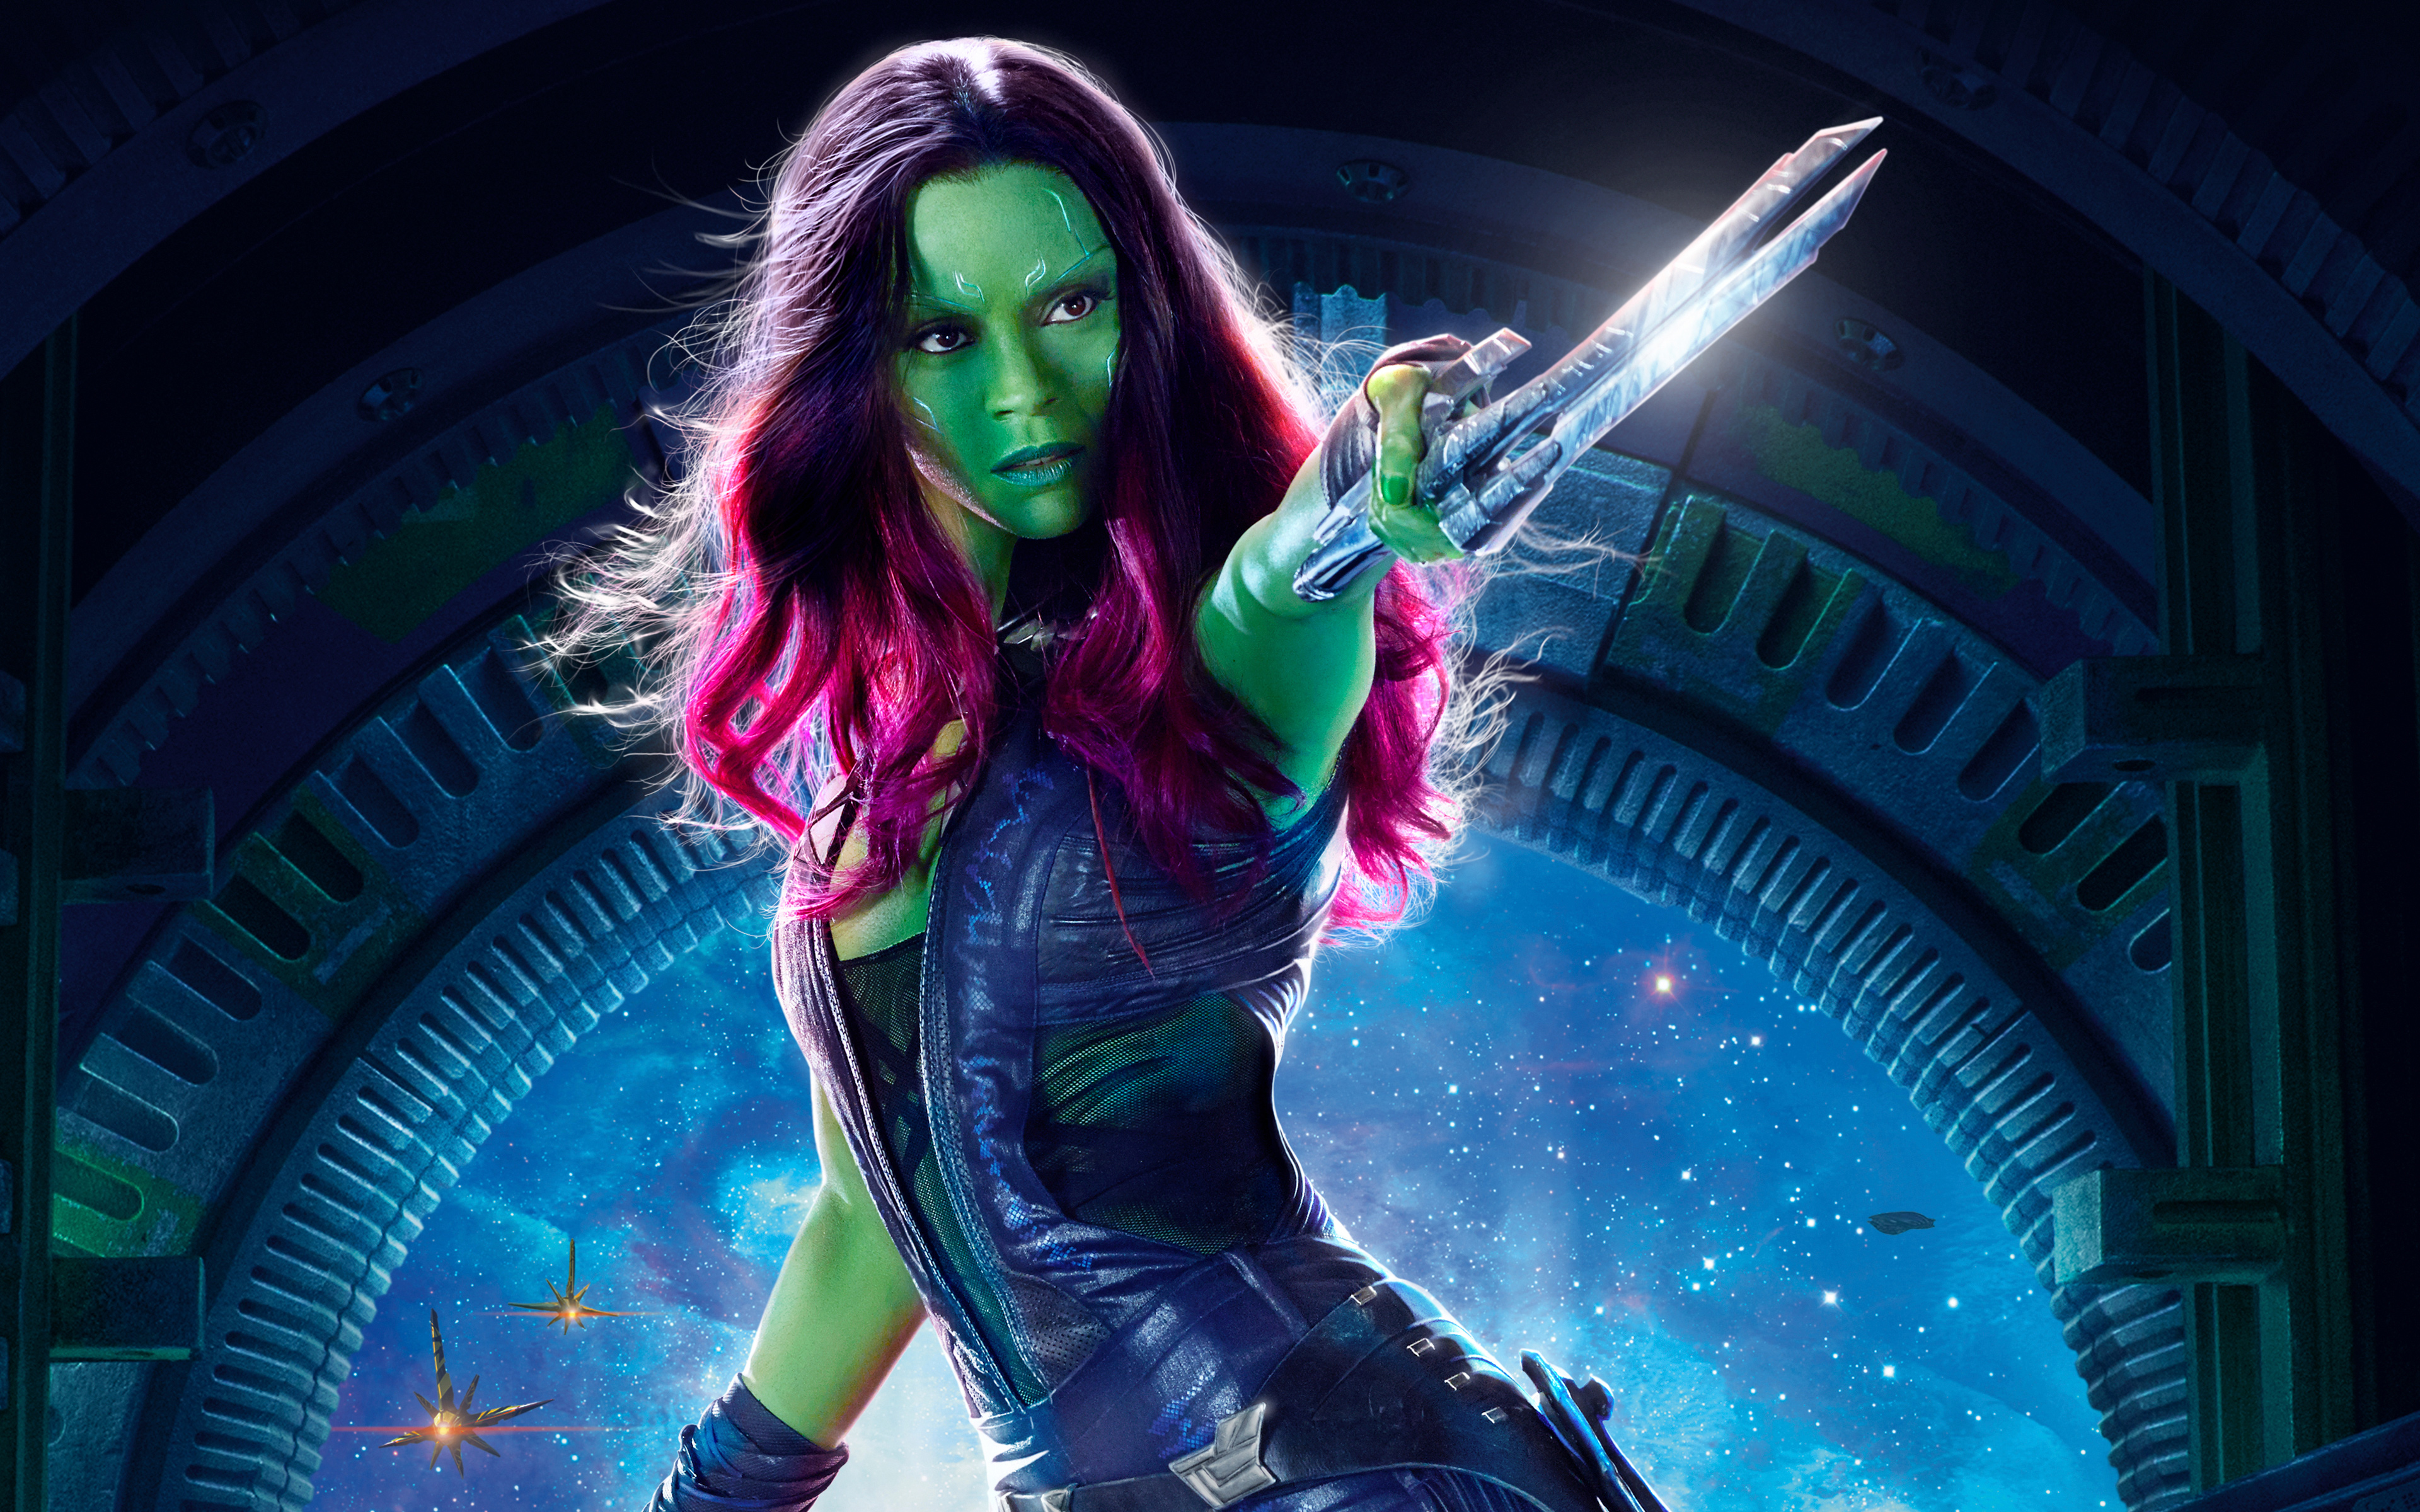 Gamora Guardians of the Galaxy Vol 2 4K HD309856447 - Gamora Guardians of the Galaxy Vol 2 4K HD - Vol, Valentine, The, Guardians, Gamora, Galaxy